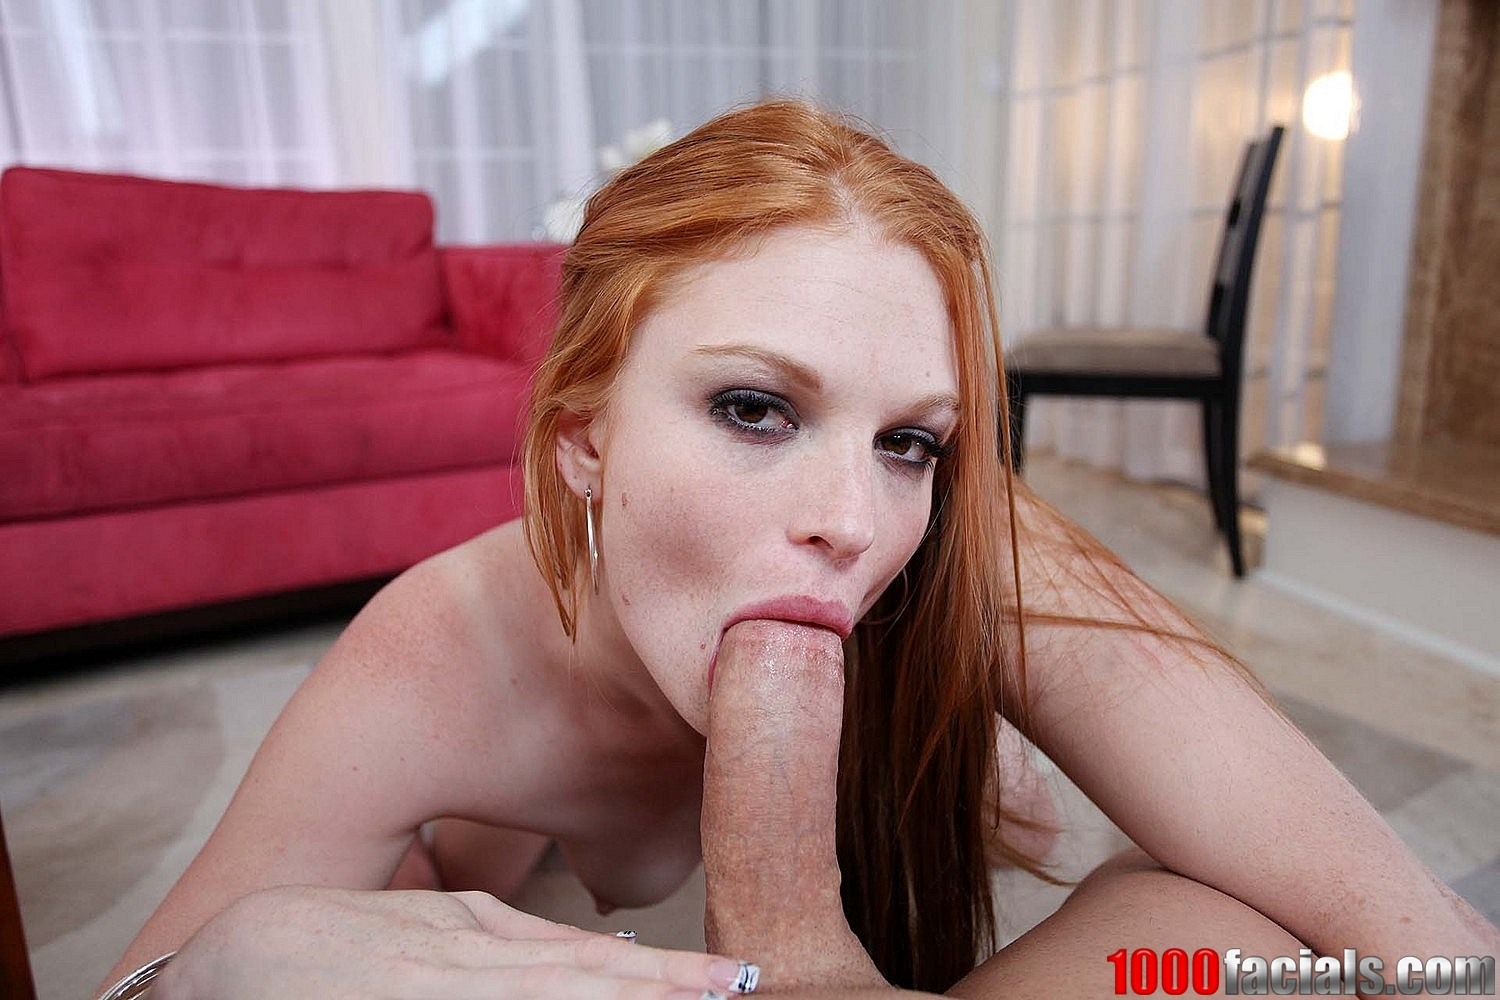 Pic young sex virgin